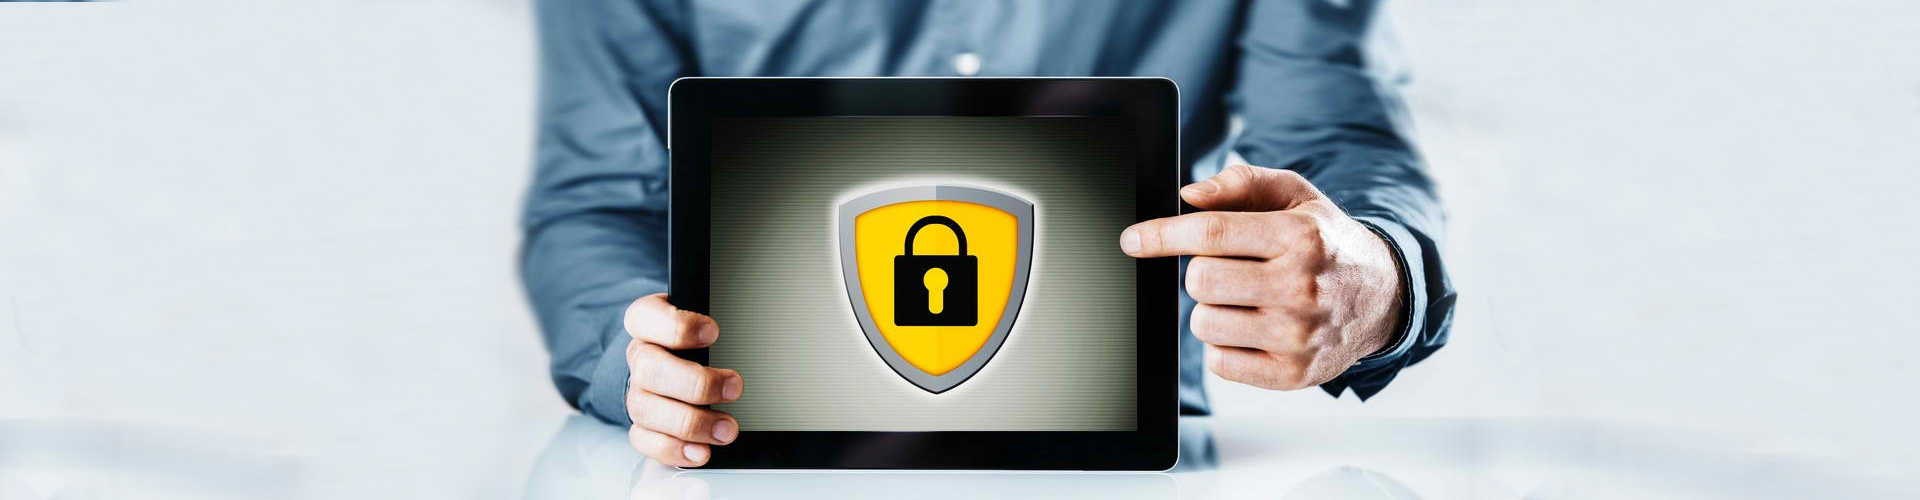 a person holding a tablet that is showing a lock image